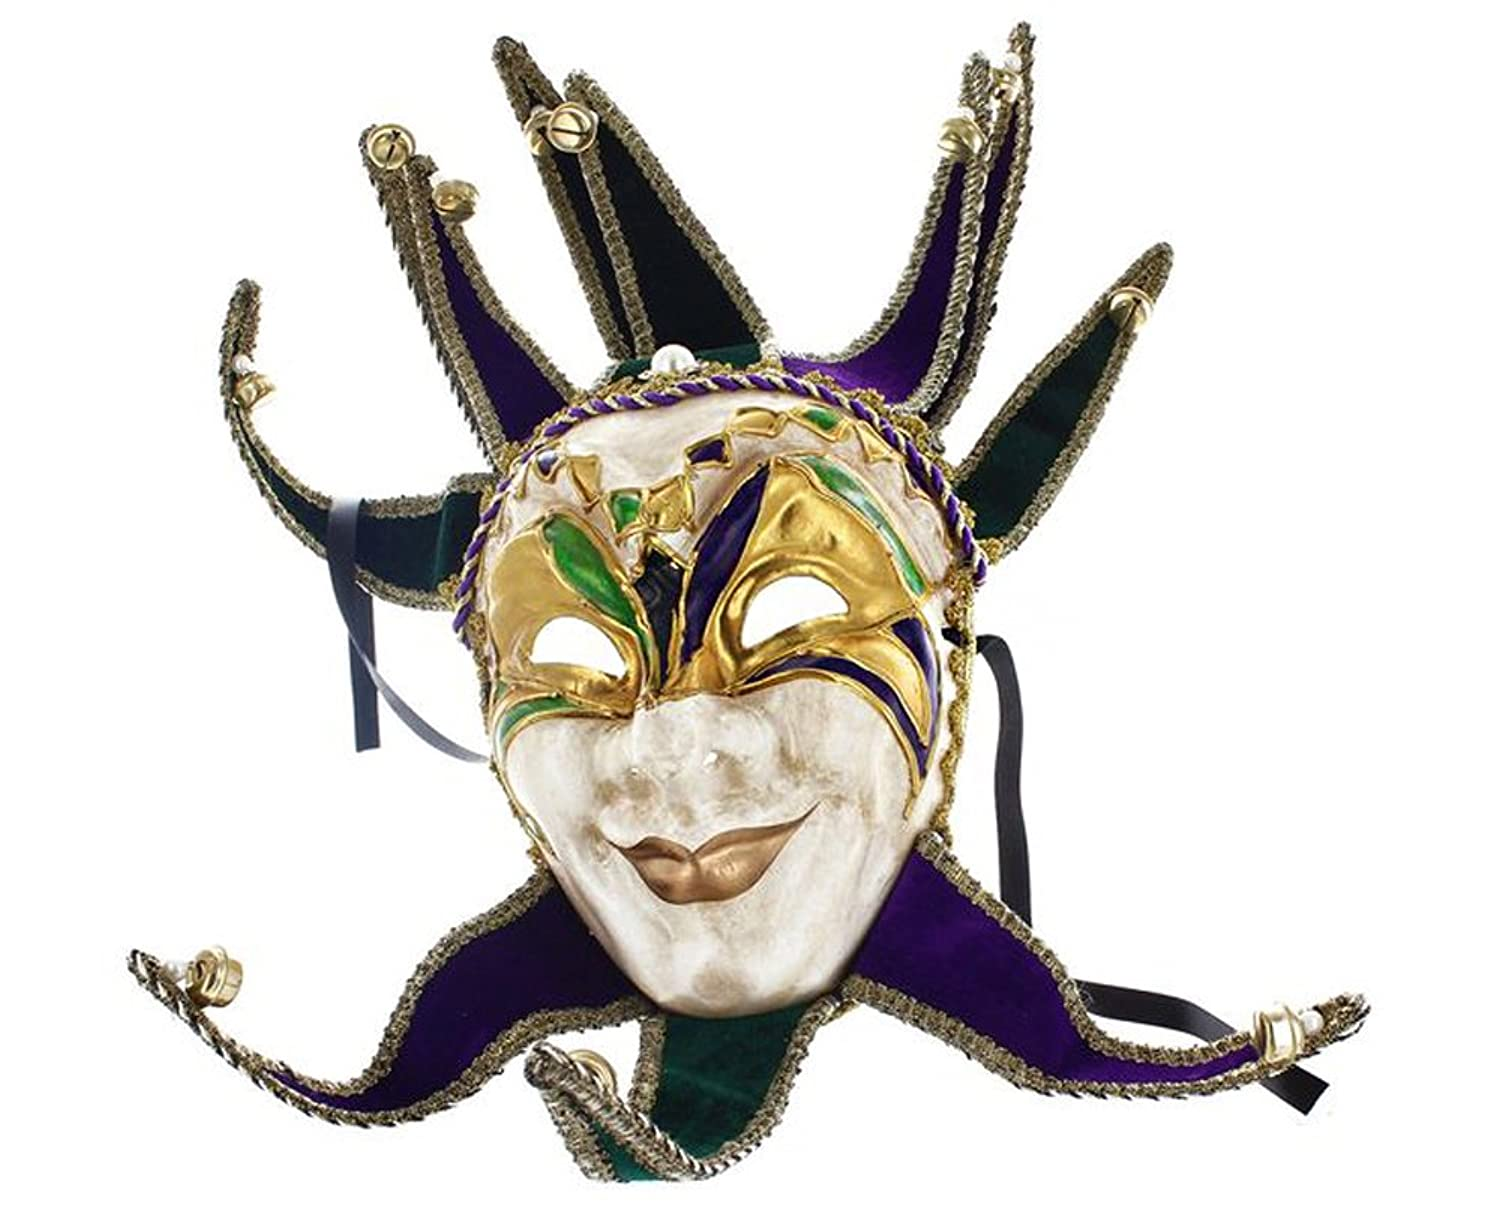 Amazon Smiling Jester Mardi Gras Full Face Carnival Mask With